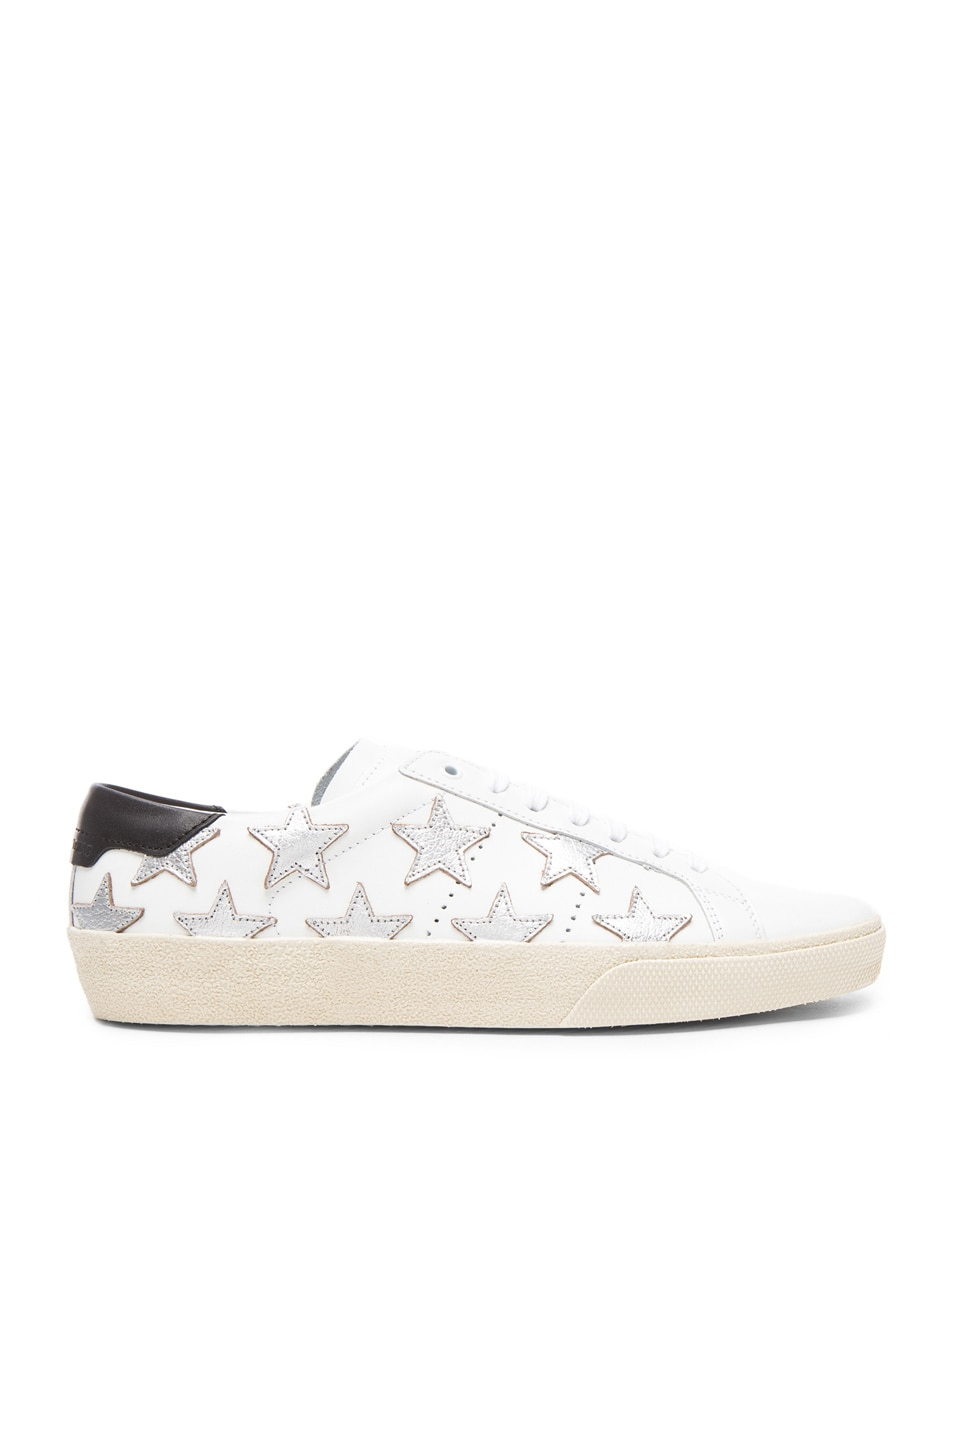 Court Classics star sneakers - White Saint Laurent